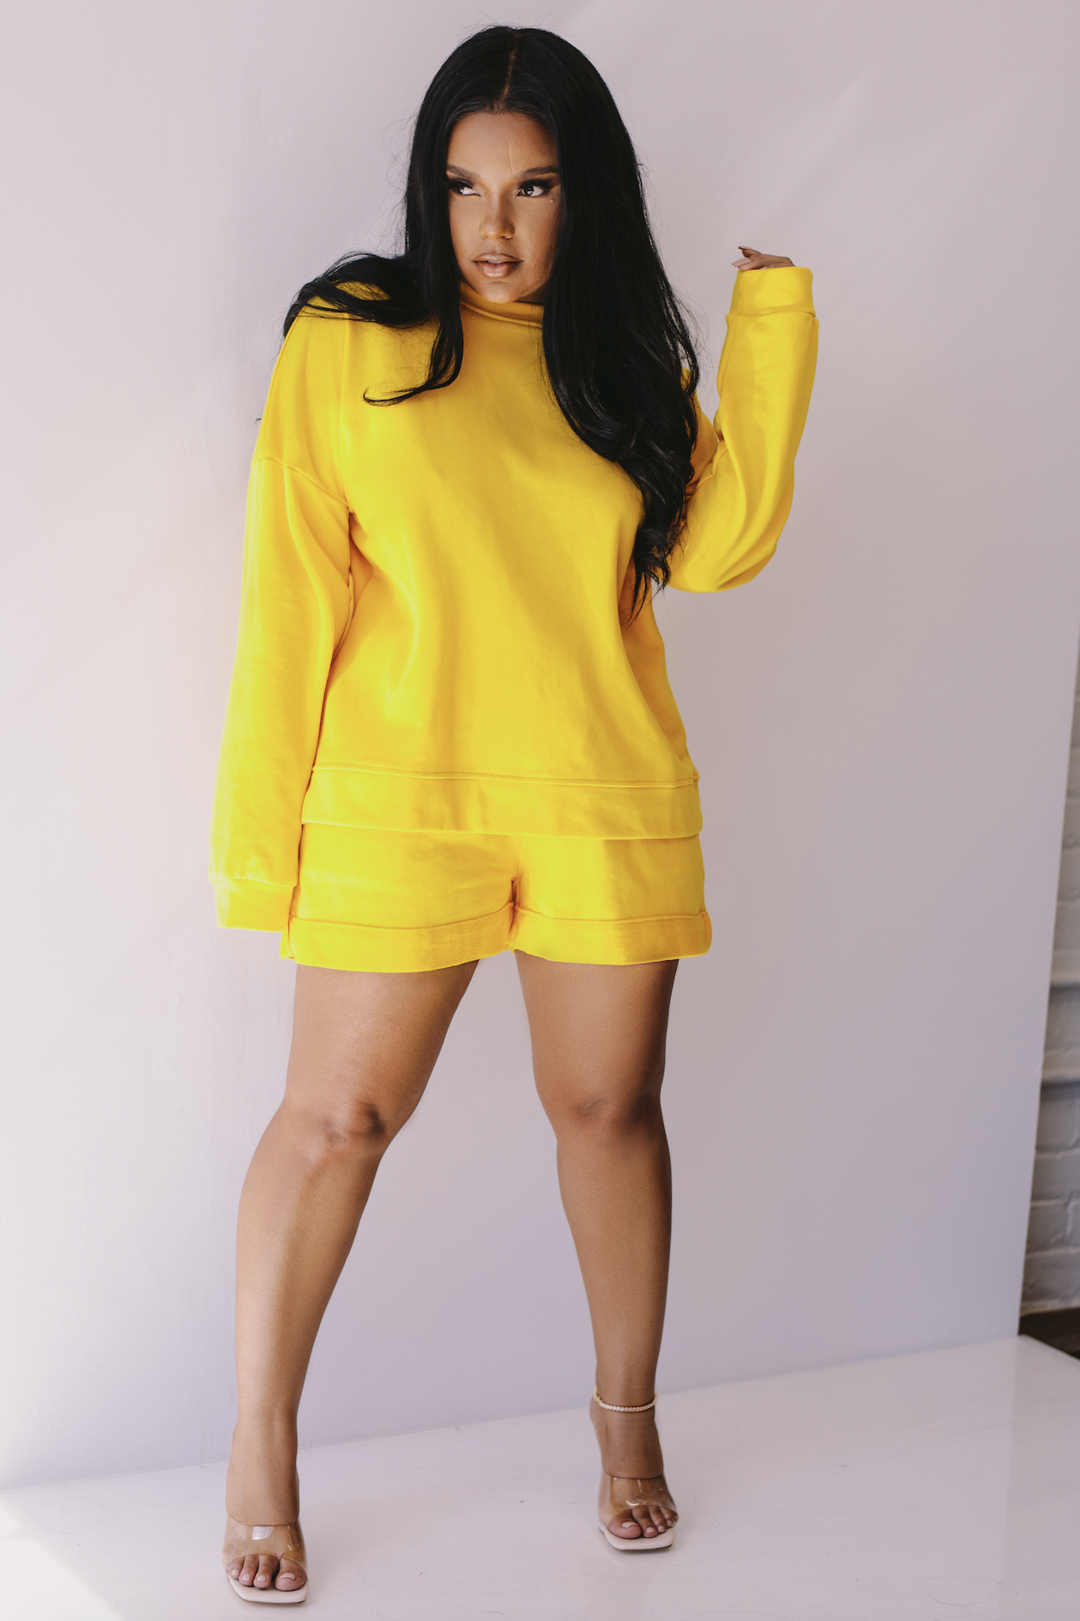 model in yellow crewneck sweatshirt and matching shorts